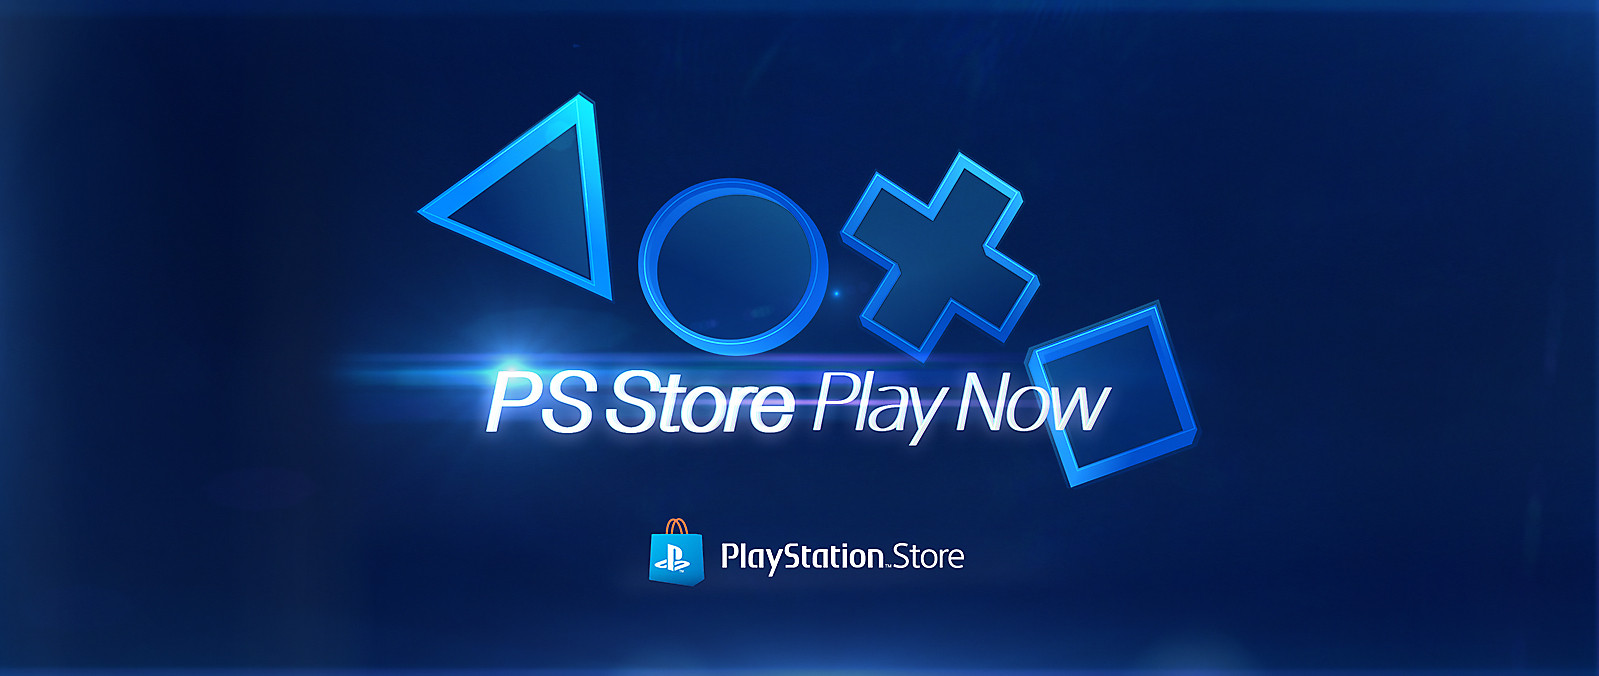 PS Store Play Now